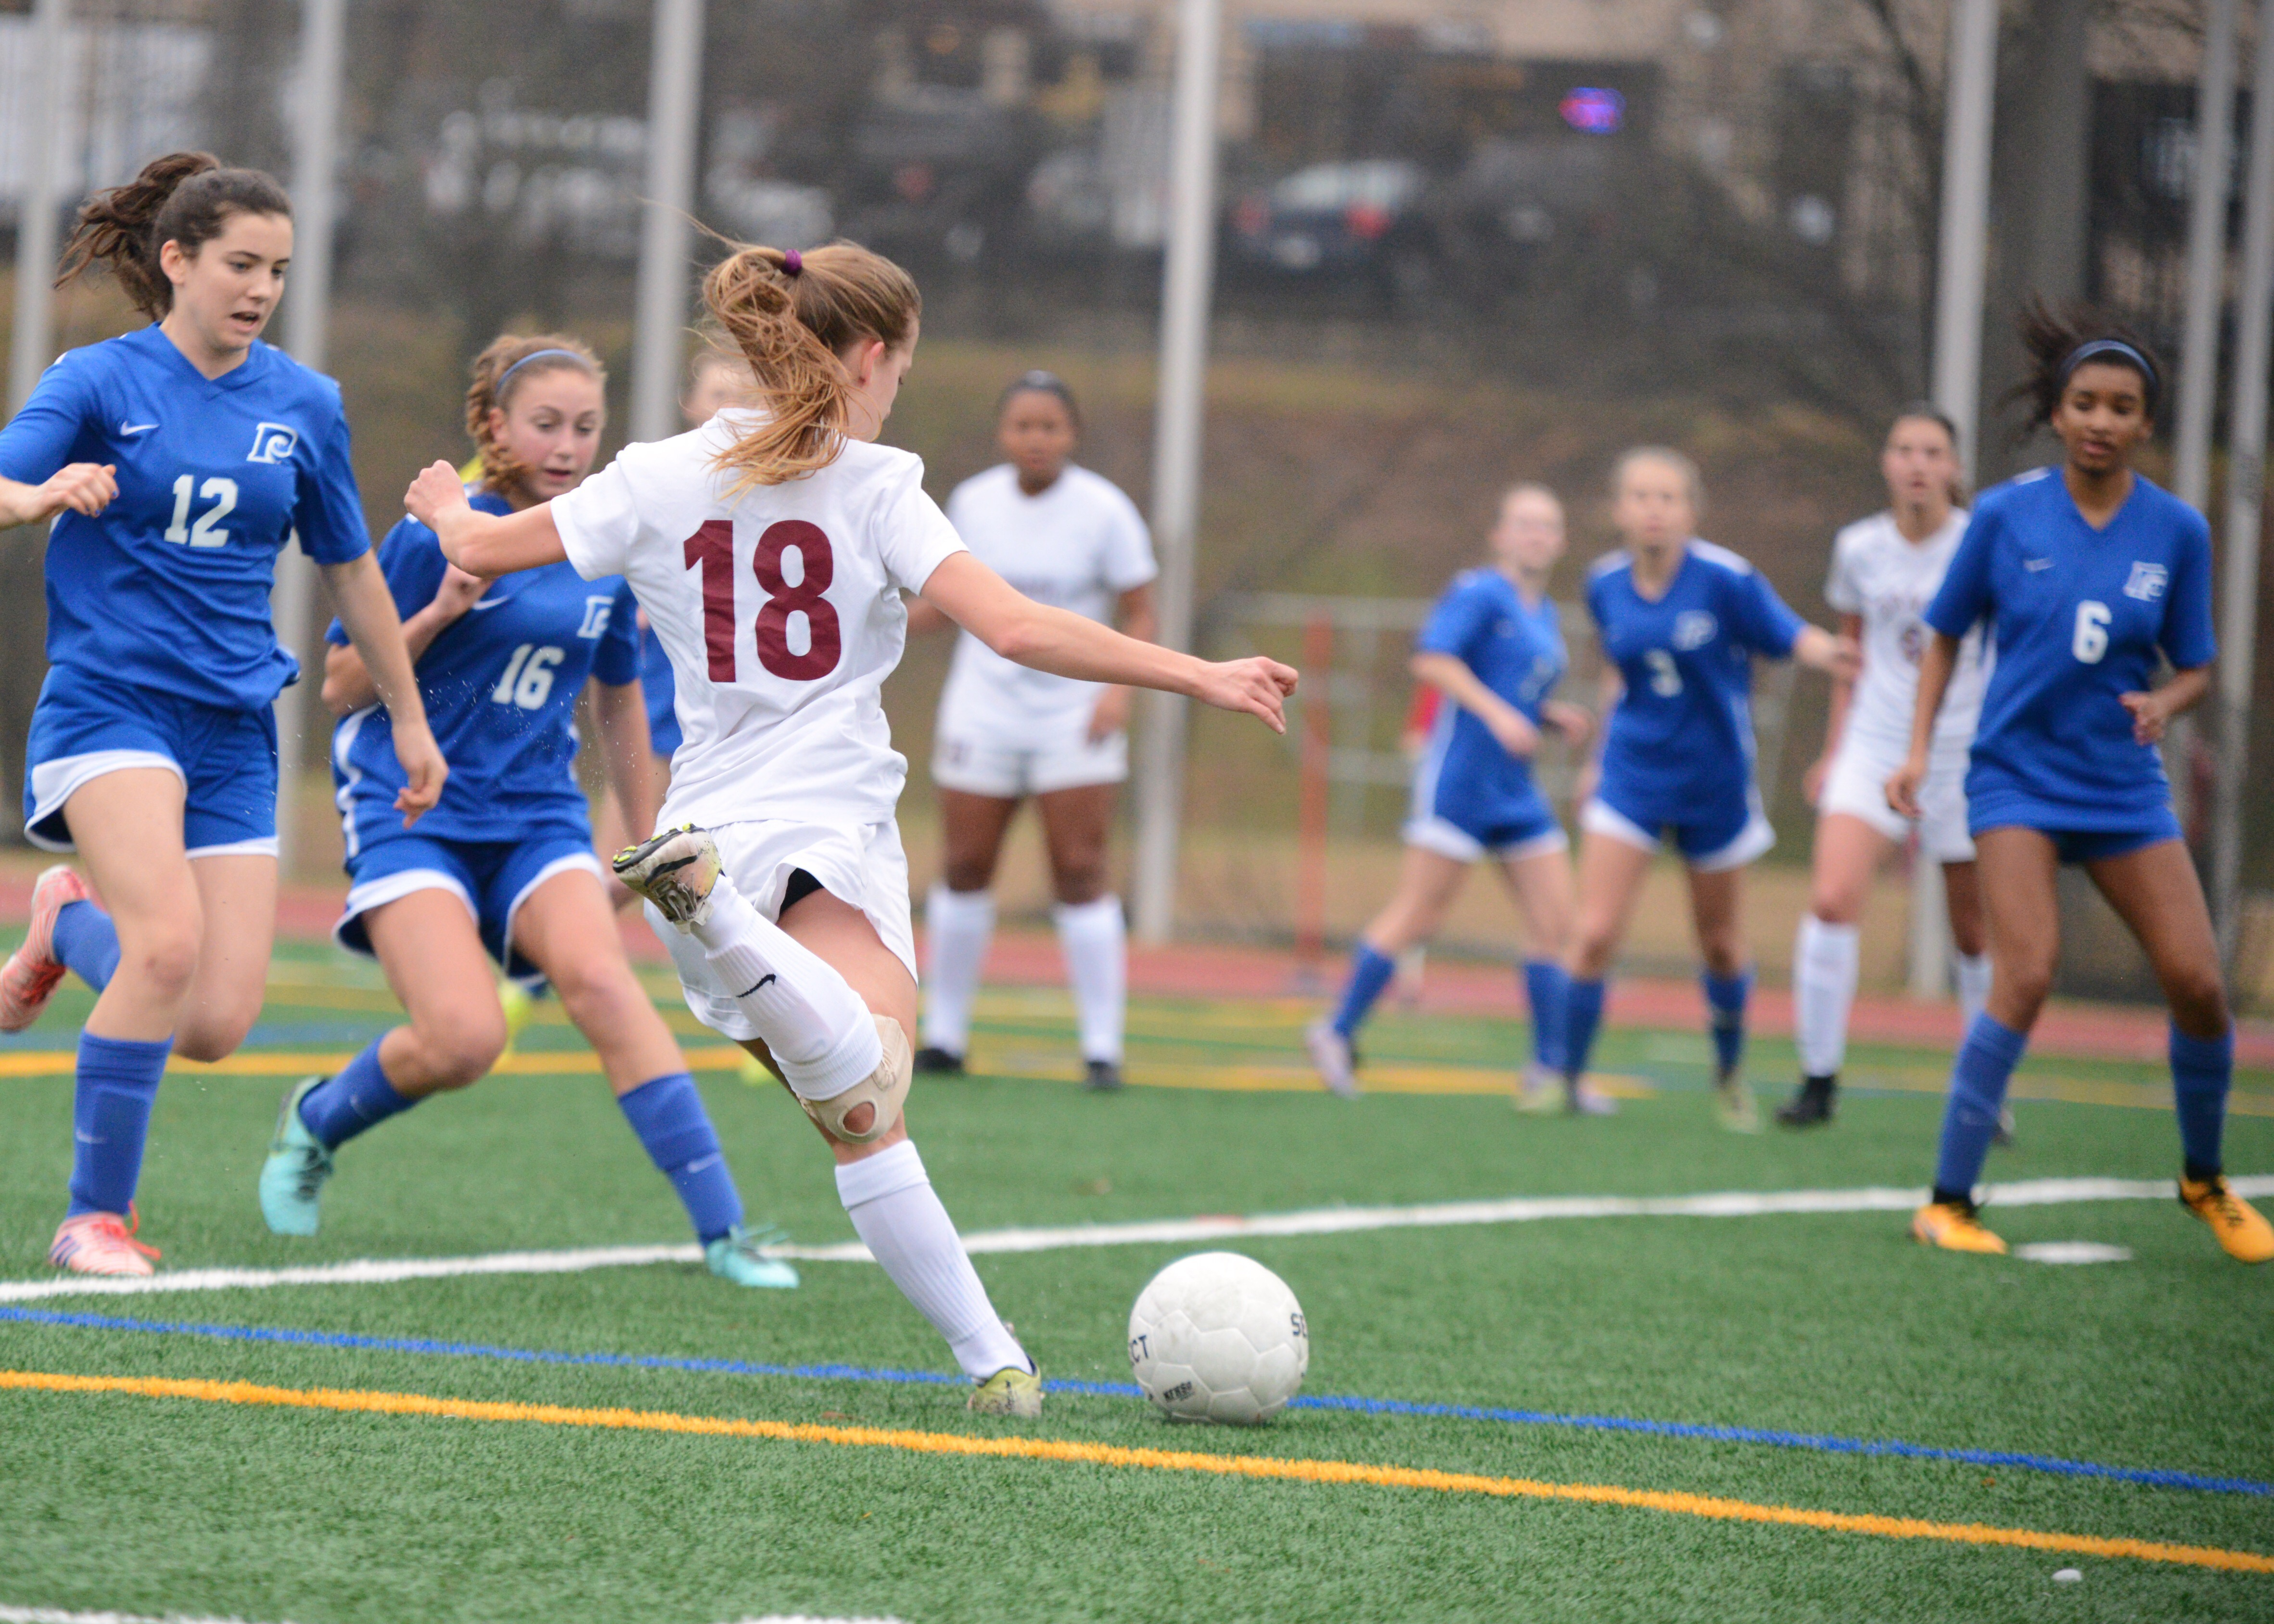 Grady Soccer Undefeated in Conference Play – Take on Decatur on Community Night March 23